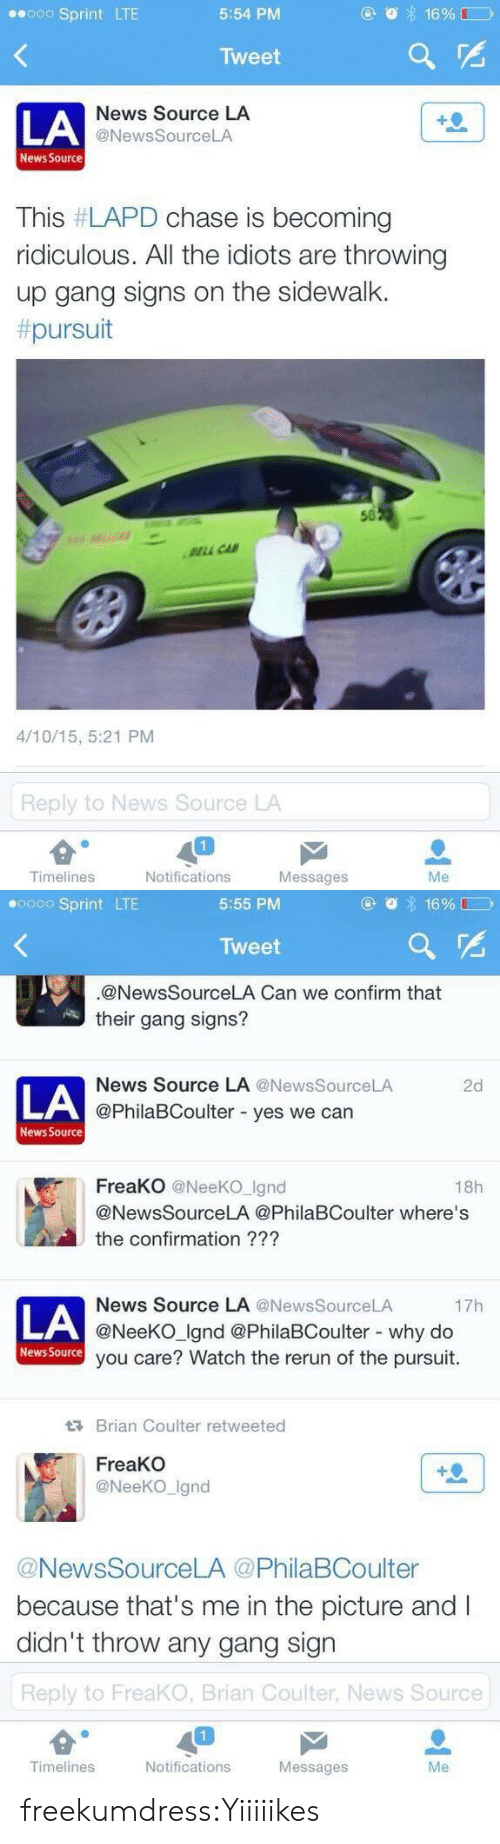 News, Target, and Tumblr: Sprint LTE  5:54 PM  Tweet  LA  News Source LA  @NewsSourceLA  News Source  This #LAPD chase is becoming  ridiculous. All the idiots are throwing  up gang signs on the sidewalk.  pursuit  50  LL CA  4/10/15, 5:21 PM  Reply to News Source LA  Timelines  Notifications  Messages  Me   0 Sprint LTE  5:55 PM  Tweet  @NewsSourceLA Can we confirm that  their gang signs?  News Source LA @News SourceLA  2d  LA  @PhilaBCoulter - yes we can  News Source  FreaKO @NeeKO Ignd  18h  @NewsSourceLA @PhilaBCoulter where's  the confirmation ???  News Source LA @NewsSourceLA  @NeeKO Ignd @PhilaBCoulter - why do  you care? Watch the rerun of the pursuit.  17h  LA  News Source  Brian Coulter retweeted  FreaKO  @NeeKO_Ignd  @NewsSourceLA @PhilaBCoulter  because that's me in the picture and I  didn't throw any gang sign  Reply to FreaKO, Brian Coulter, News Source  Timelines  Notifications  Messages  Me freekumdress:Yiiiiikes